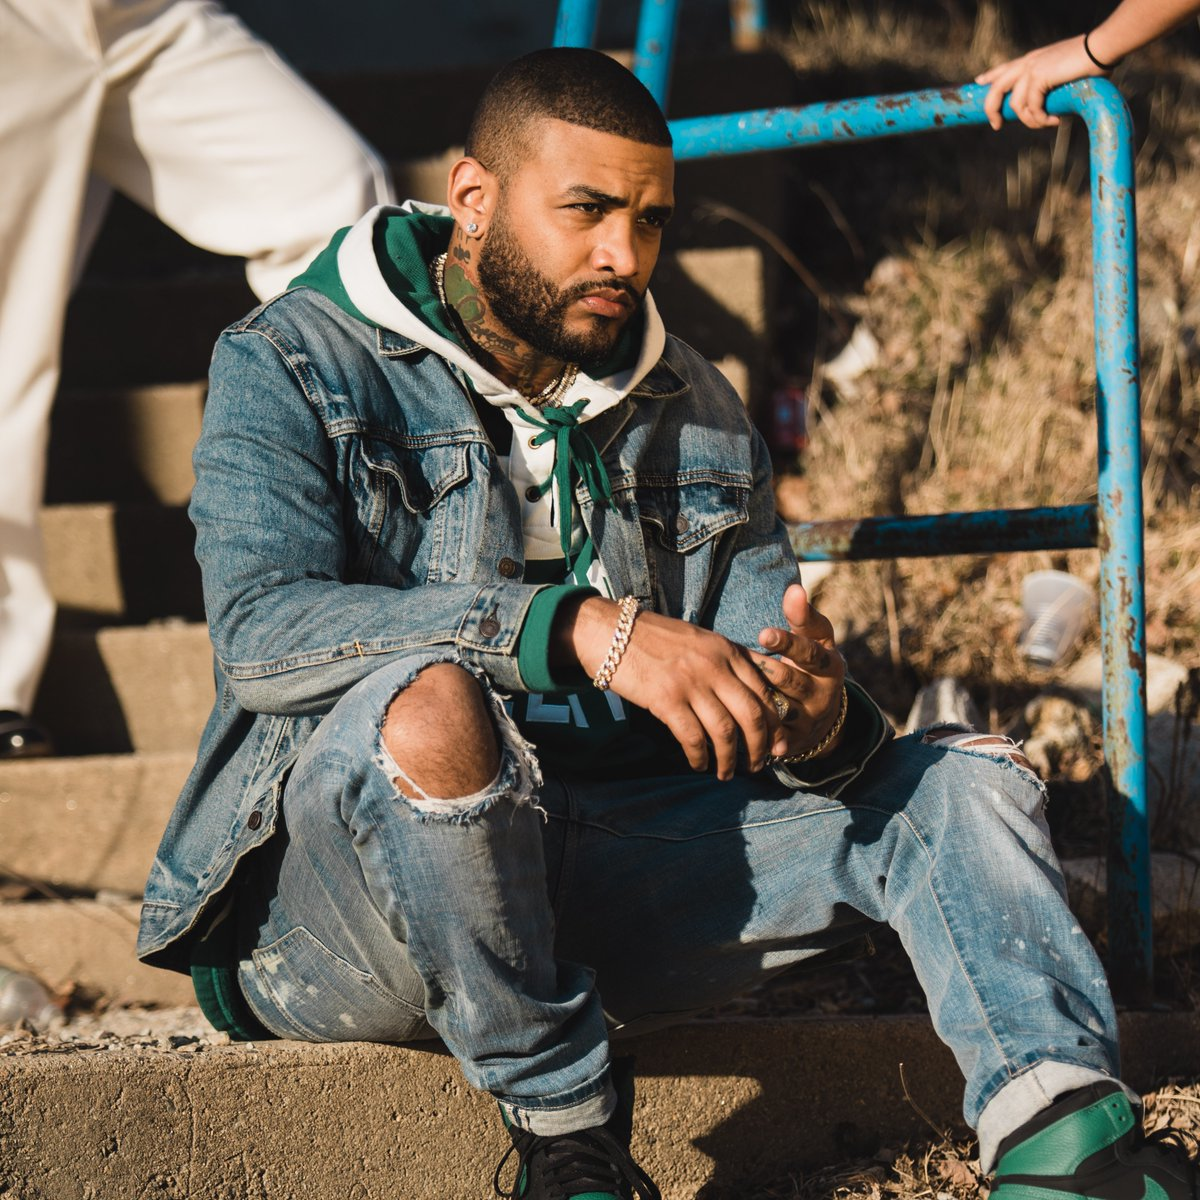 We've been waiting for this 🙏 Listen to the new @JoynerLucas album #ADHD now https://t.co/uiqJPhW6mc https://t.co/V816Kol5zm